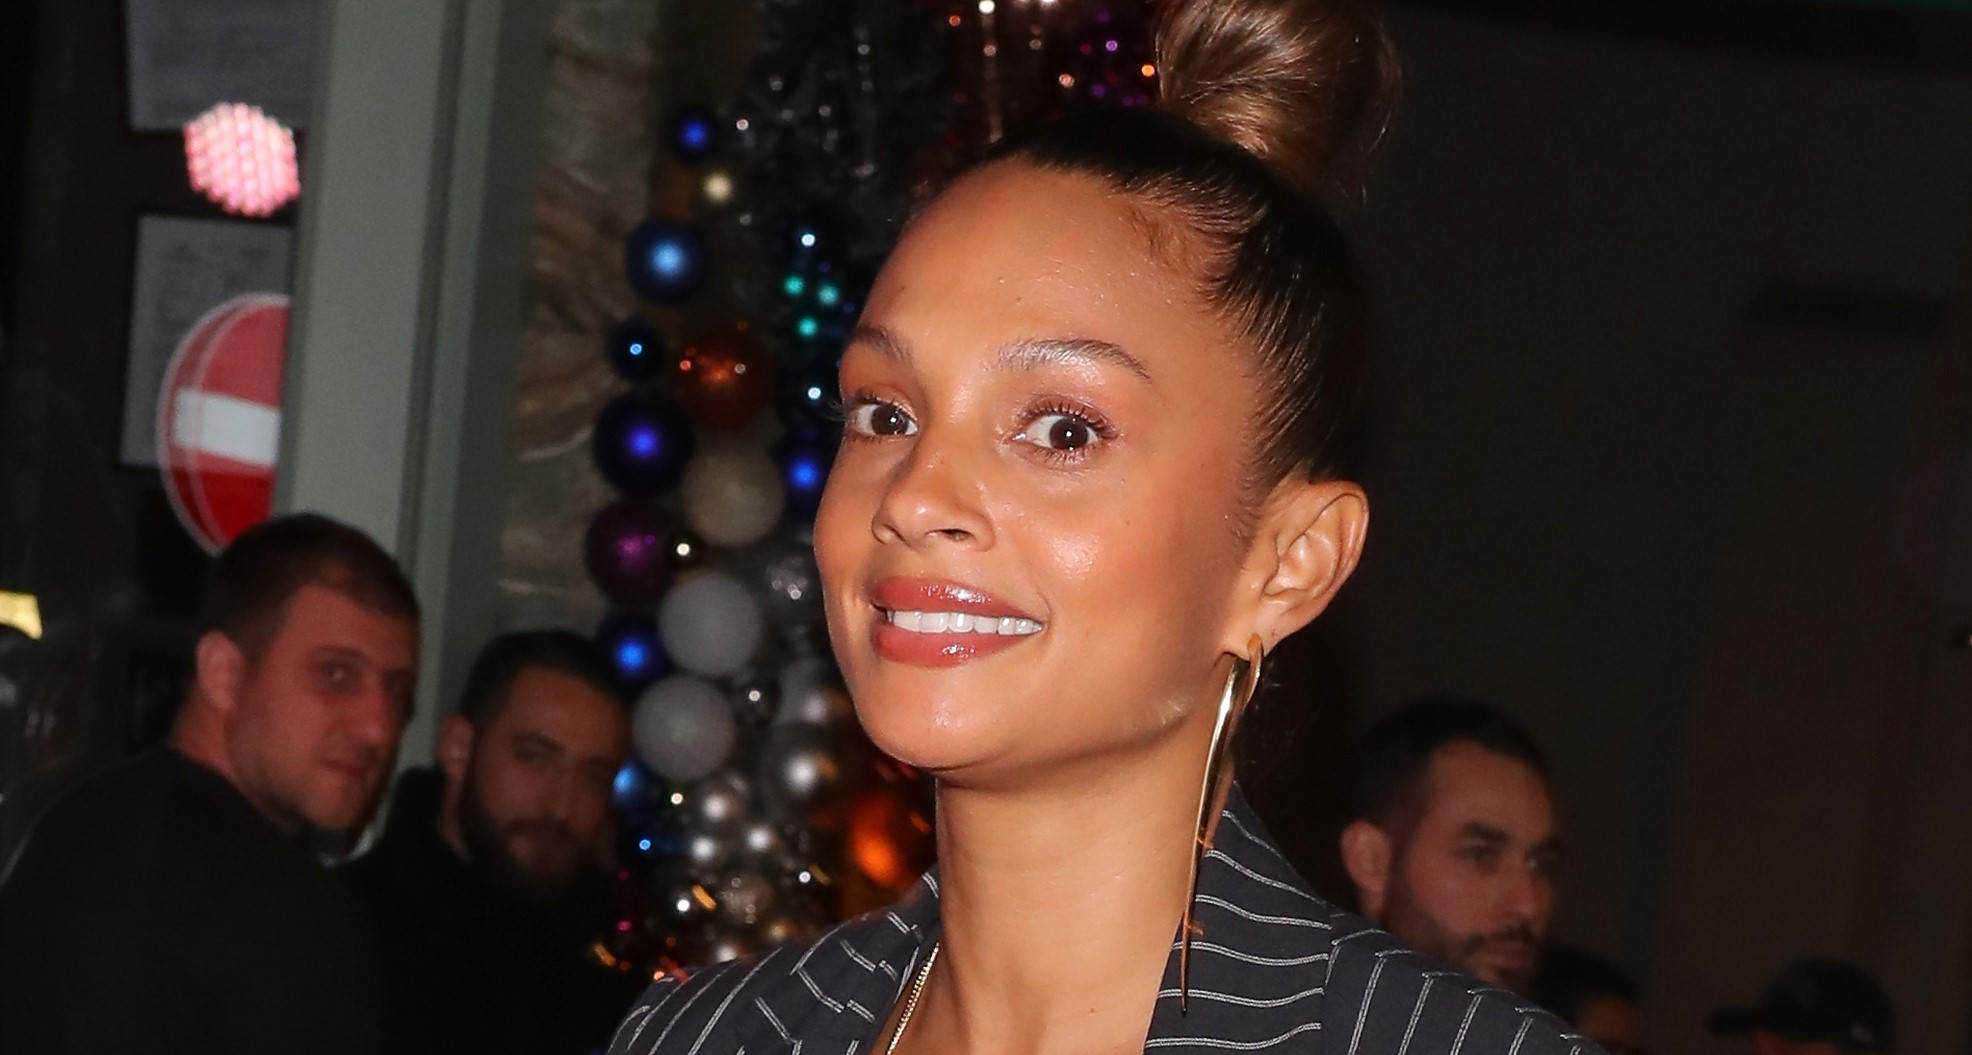 Alesha Dixon shares sweet family photo with husband and daughters